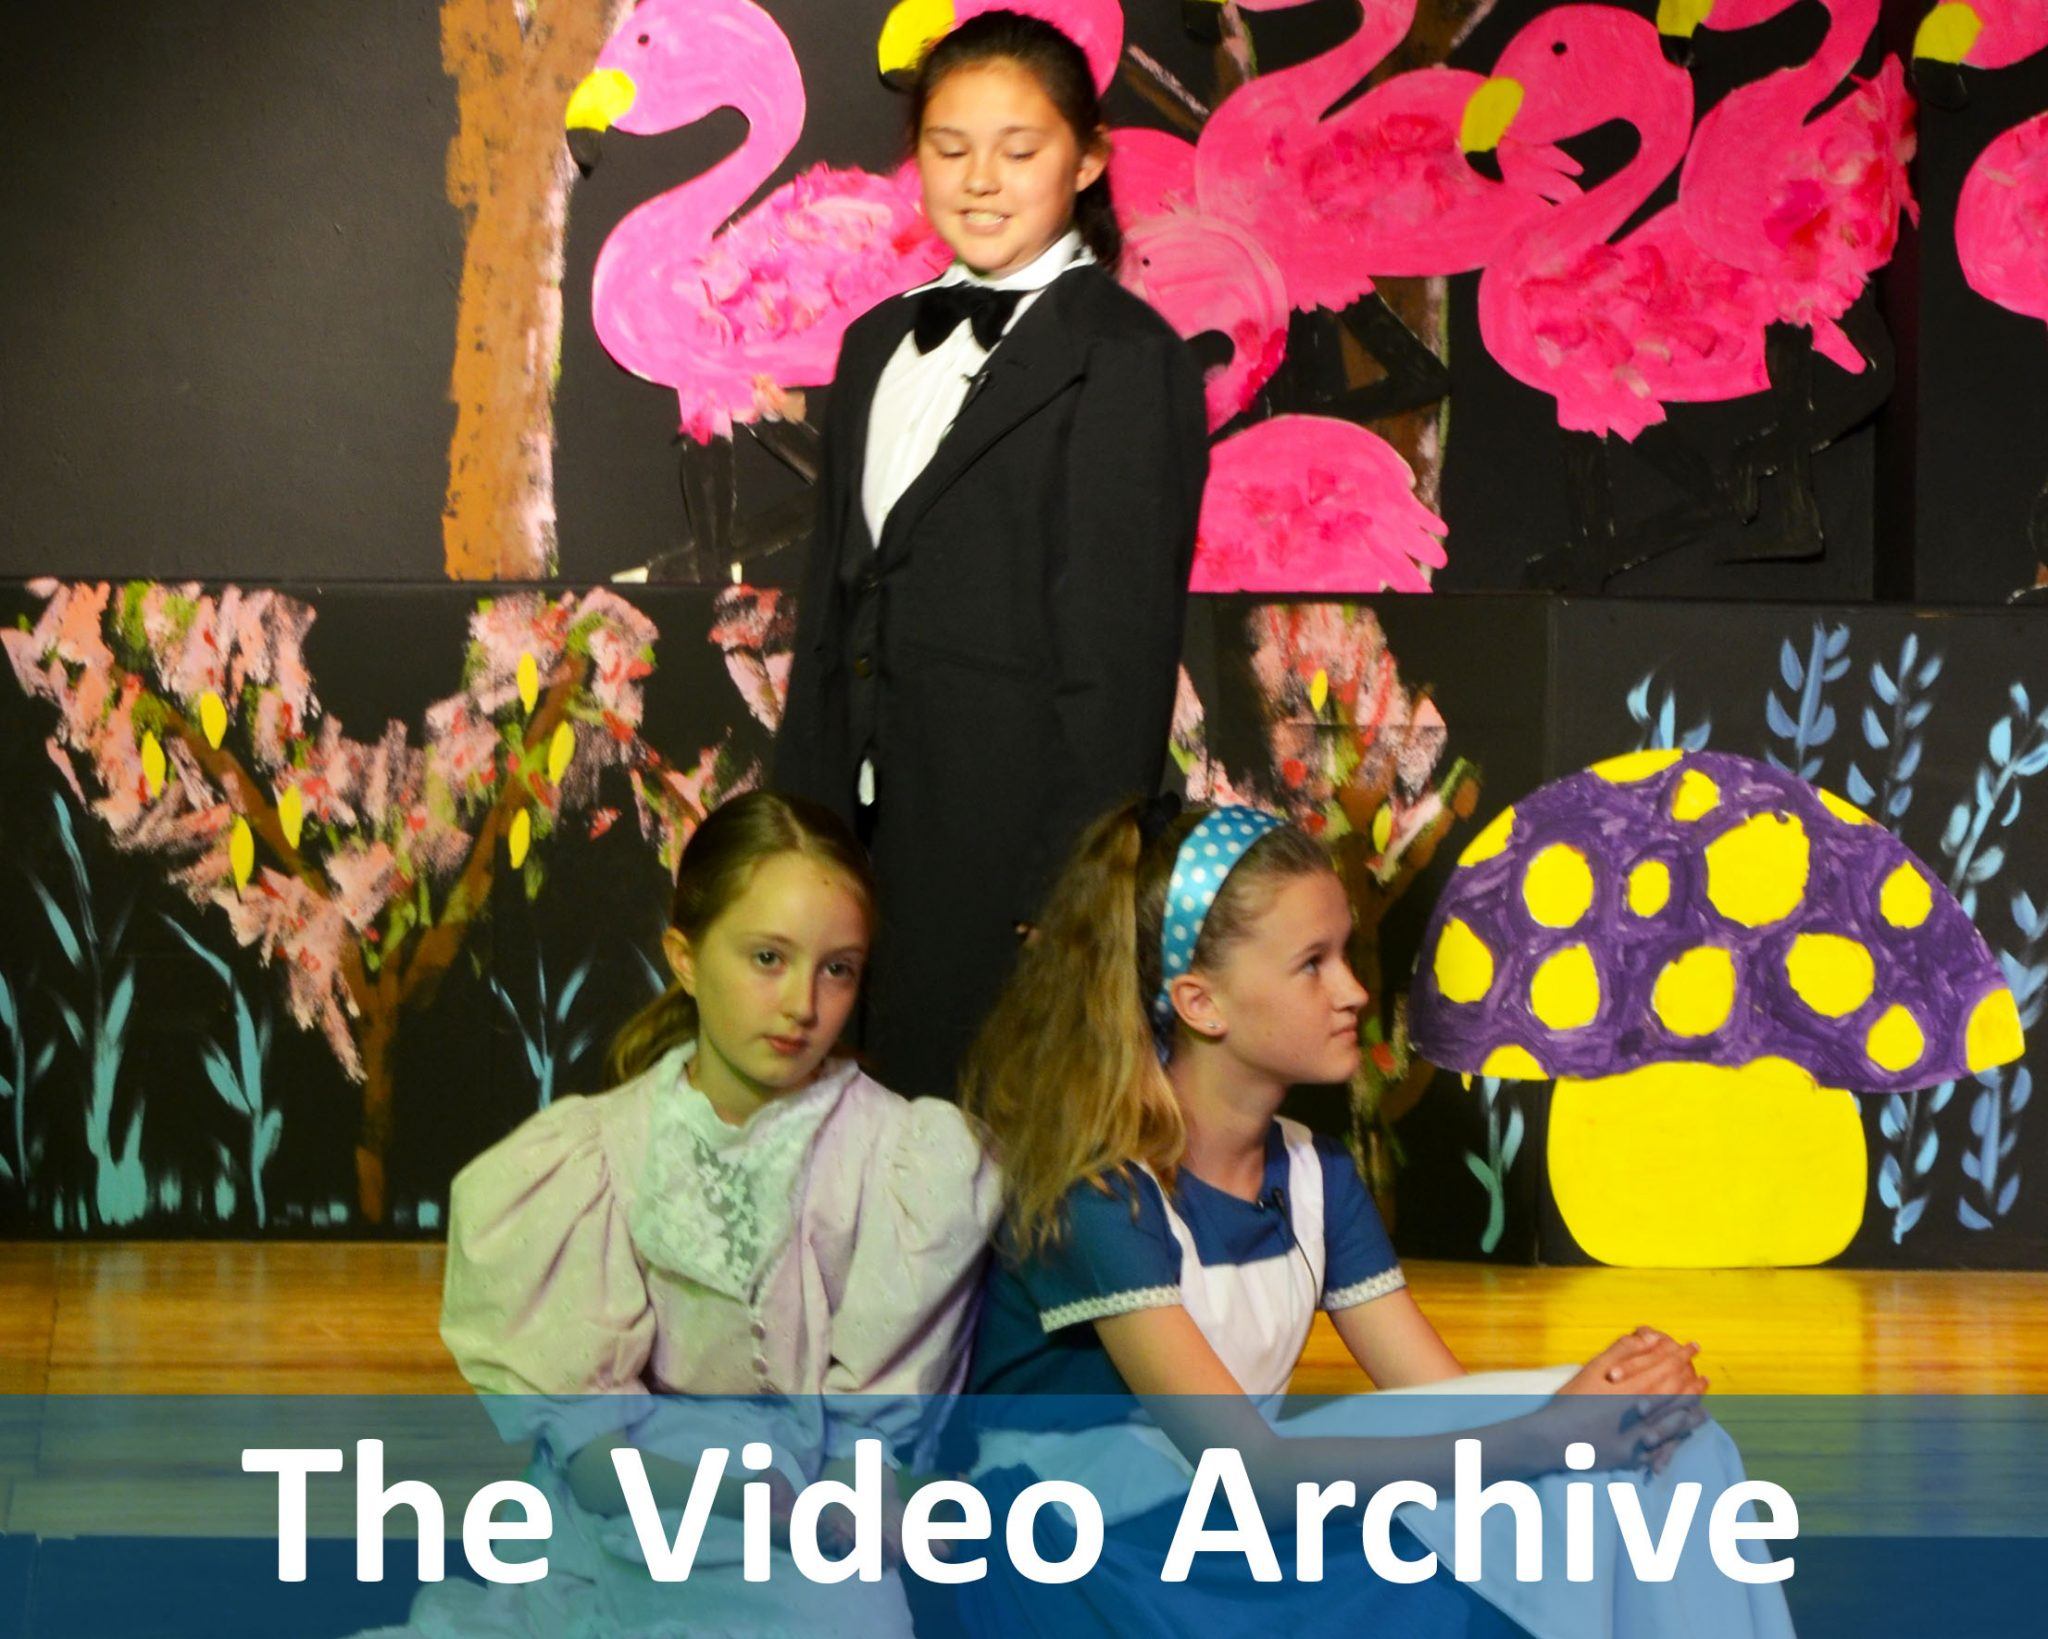 The Video Archive